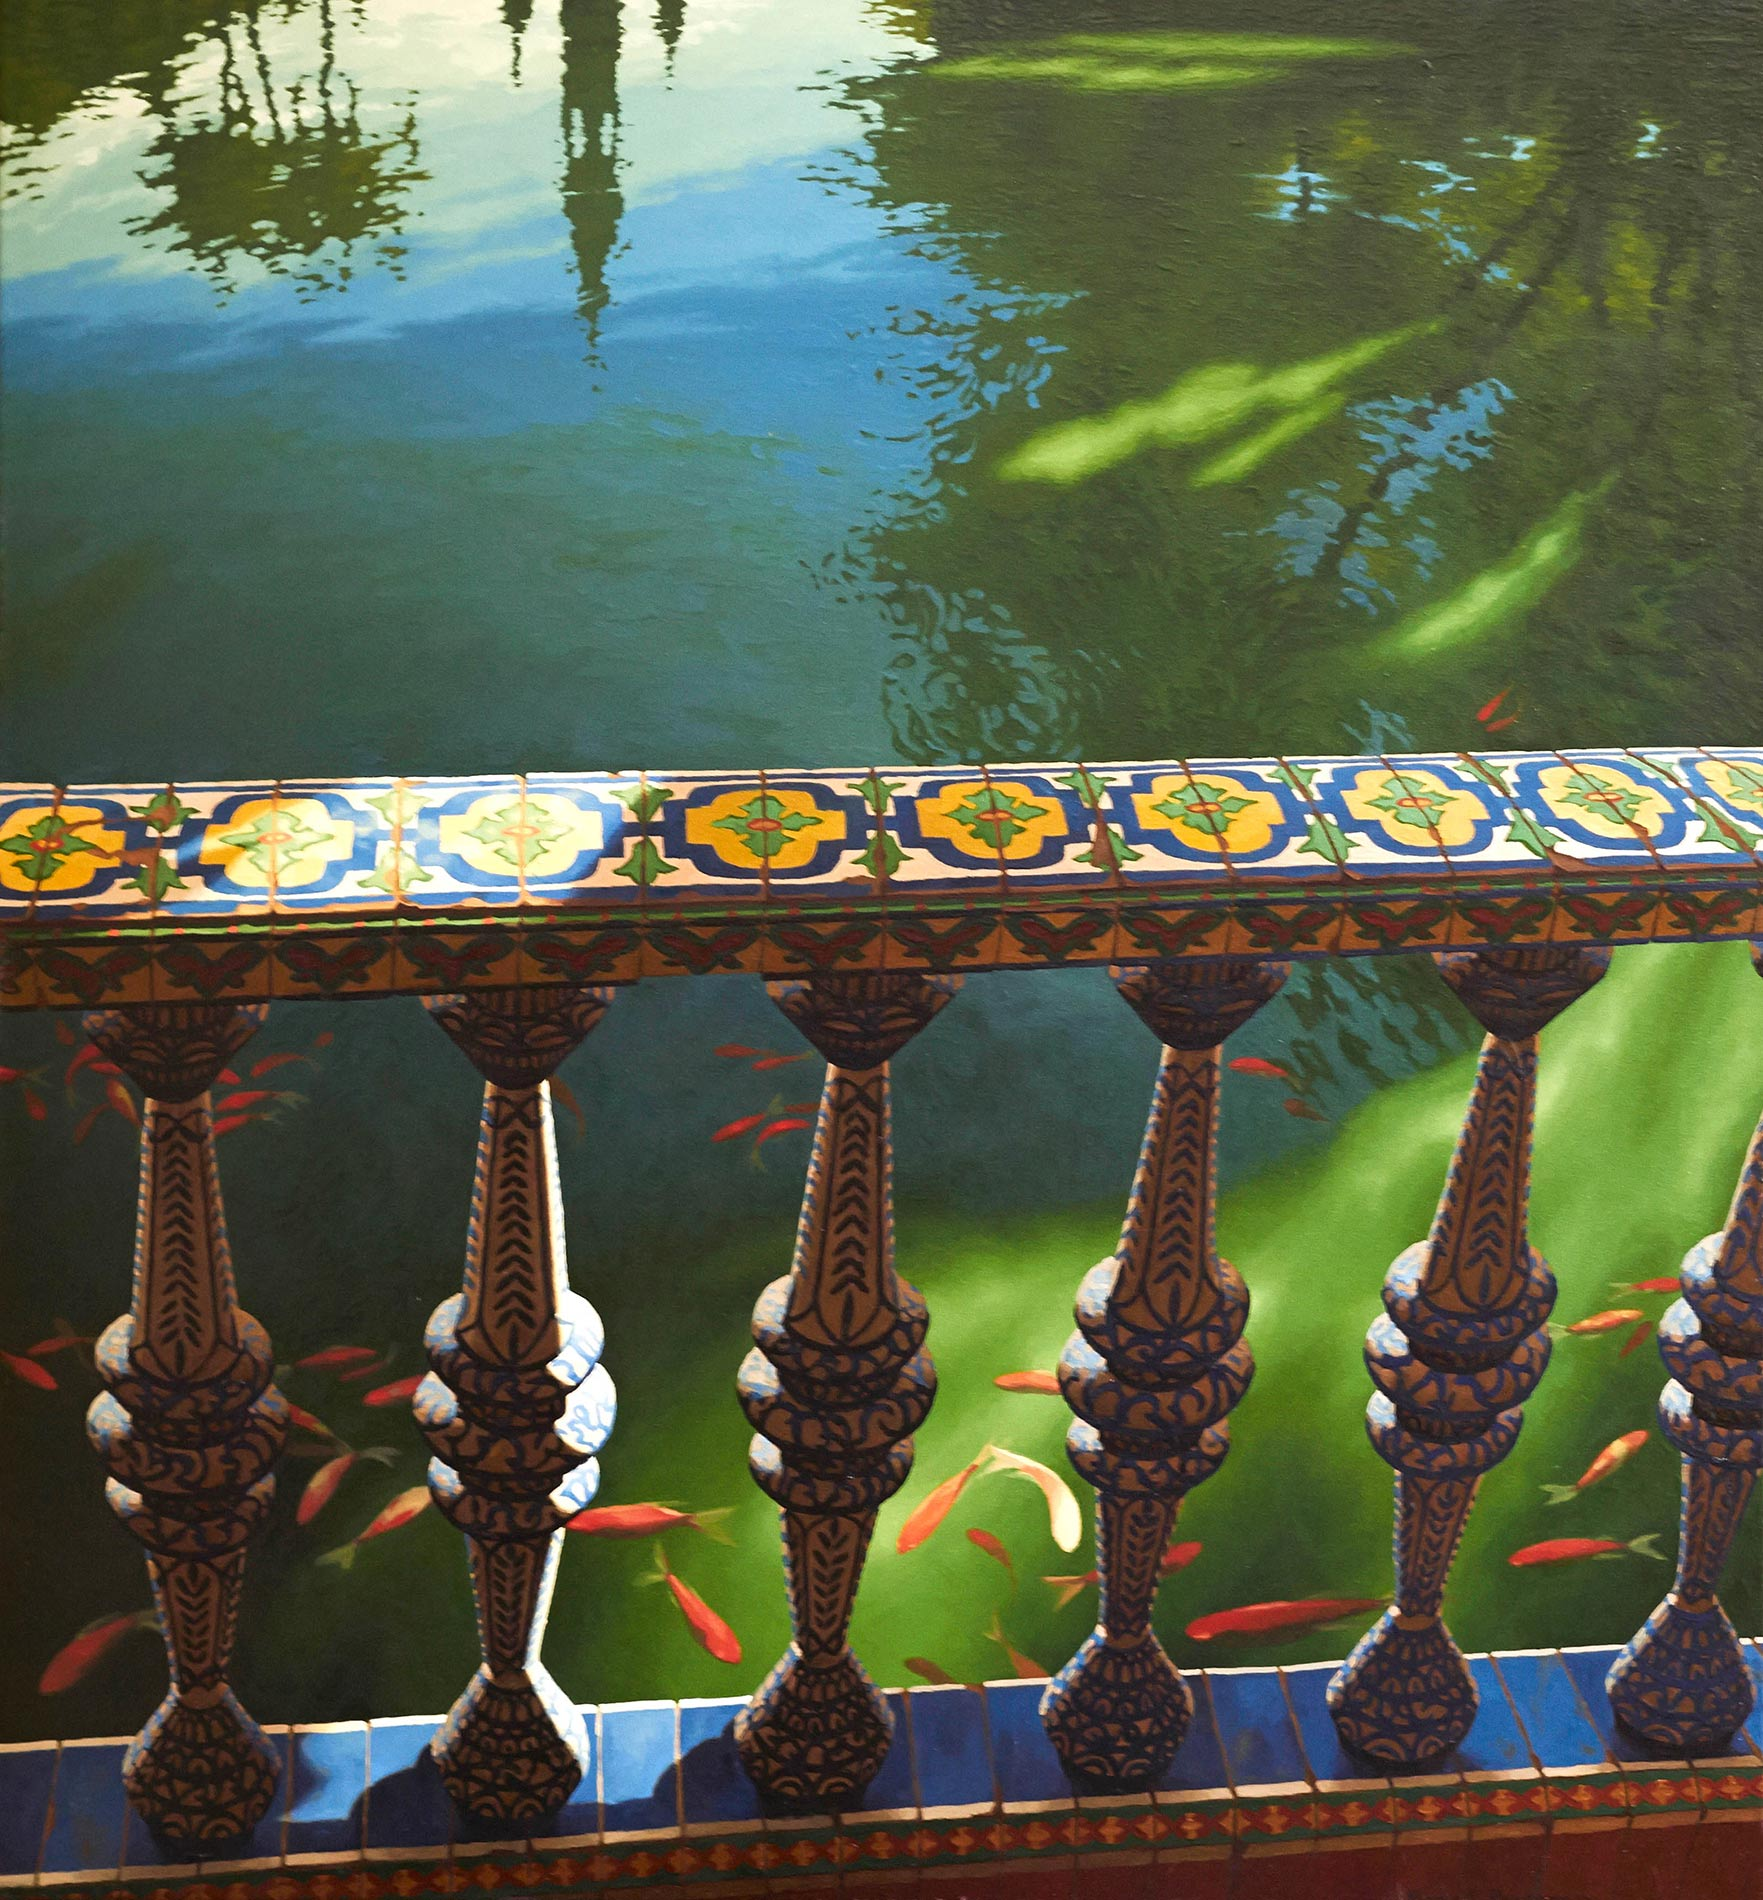 Andalusian balustrade and pool